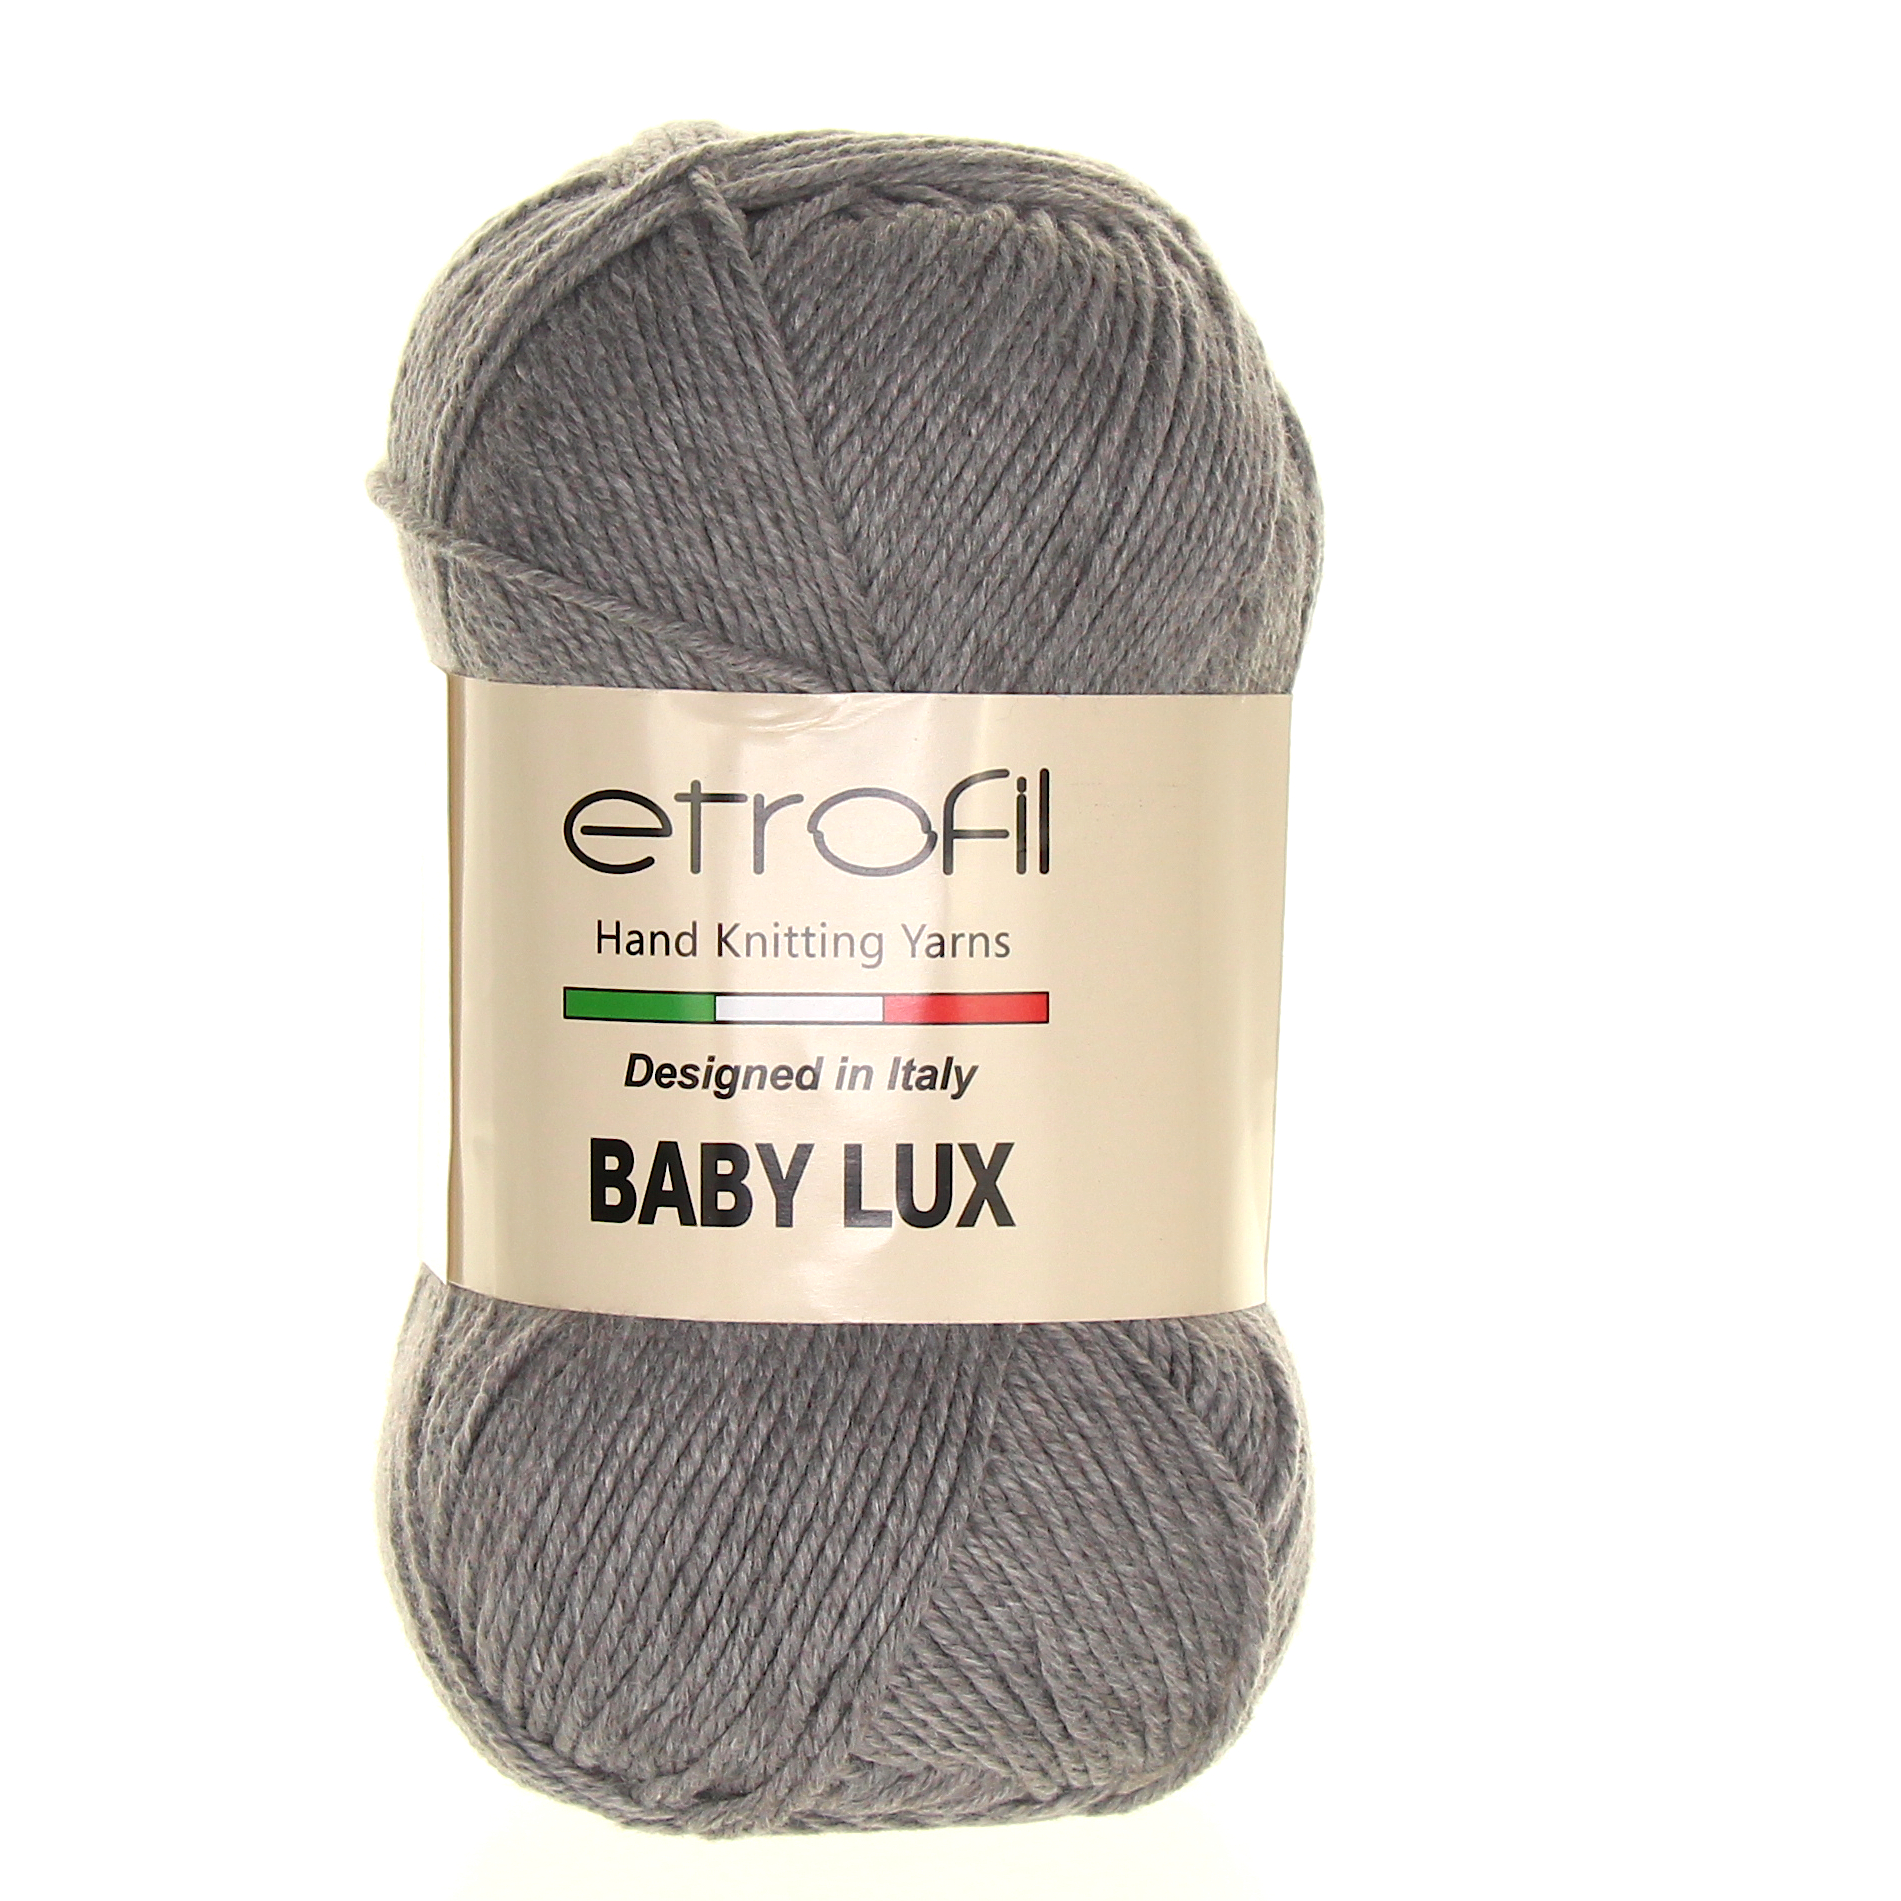 BABY_LUX_80090